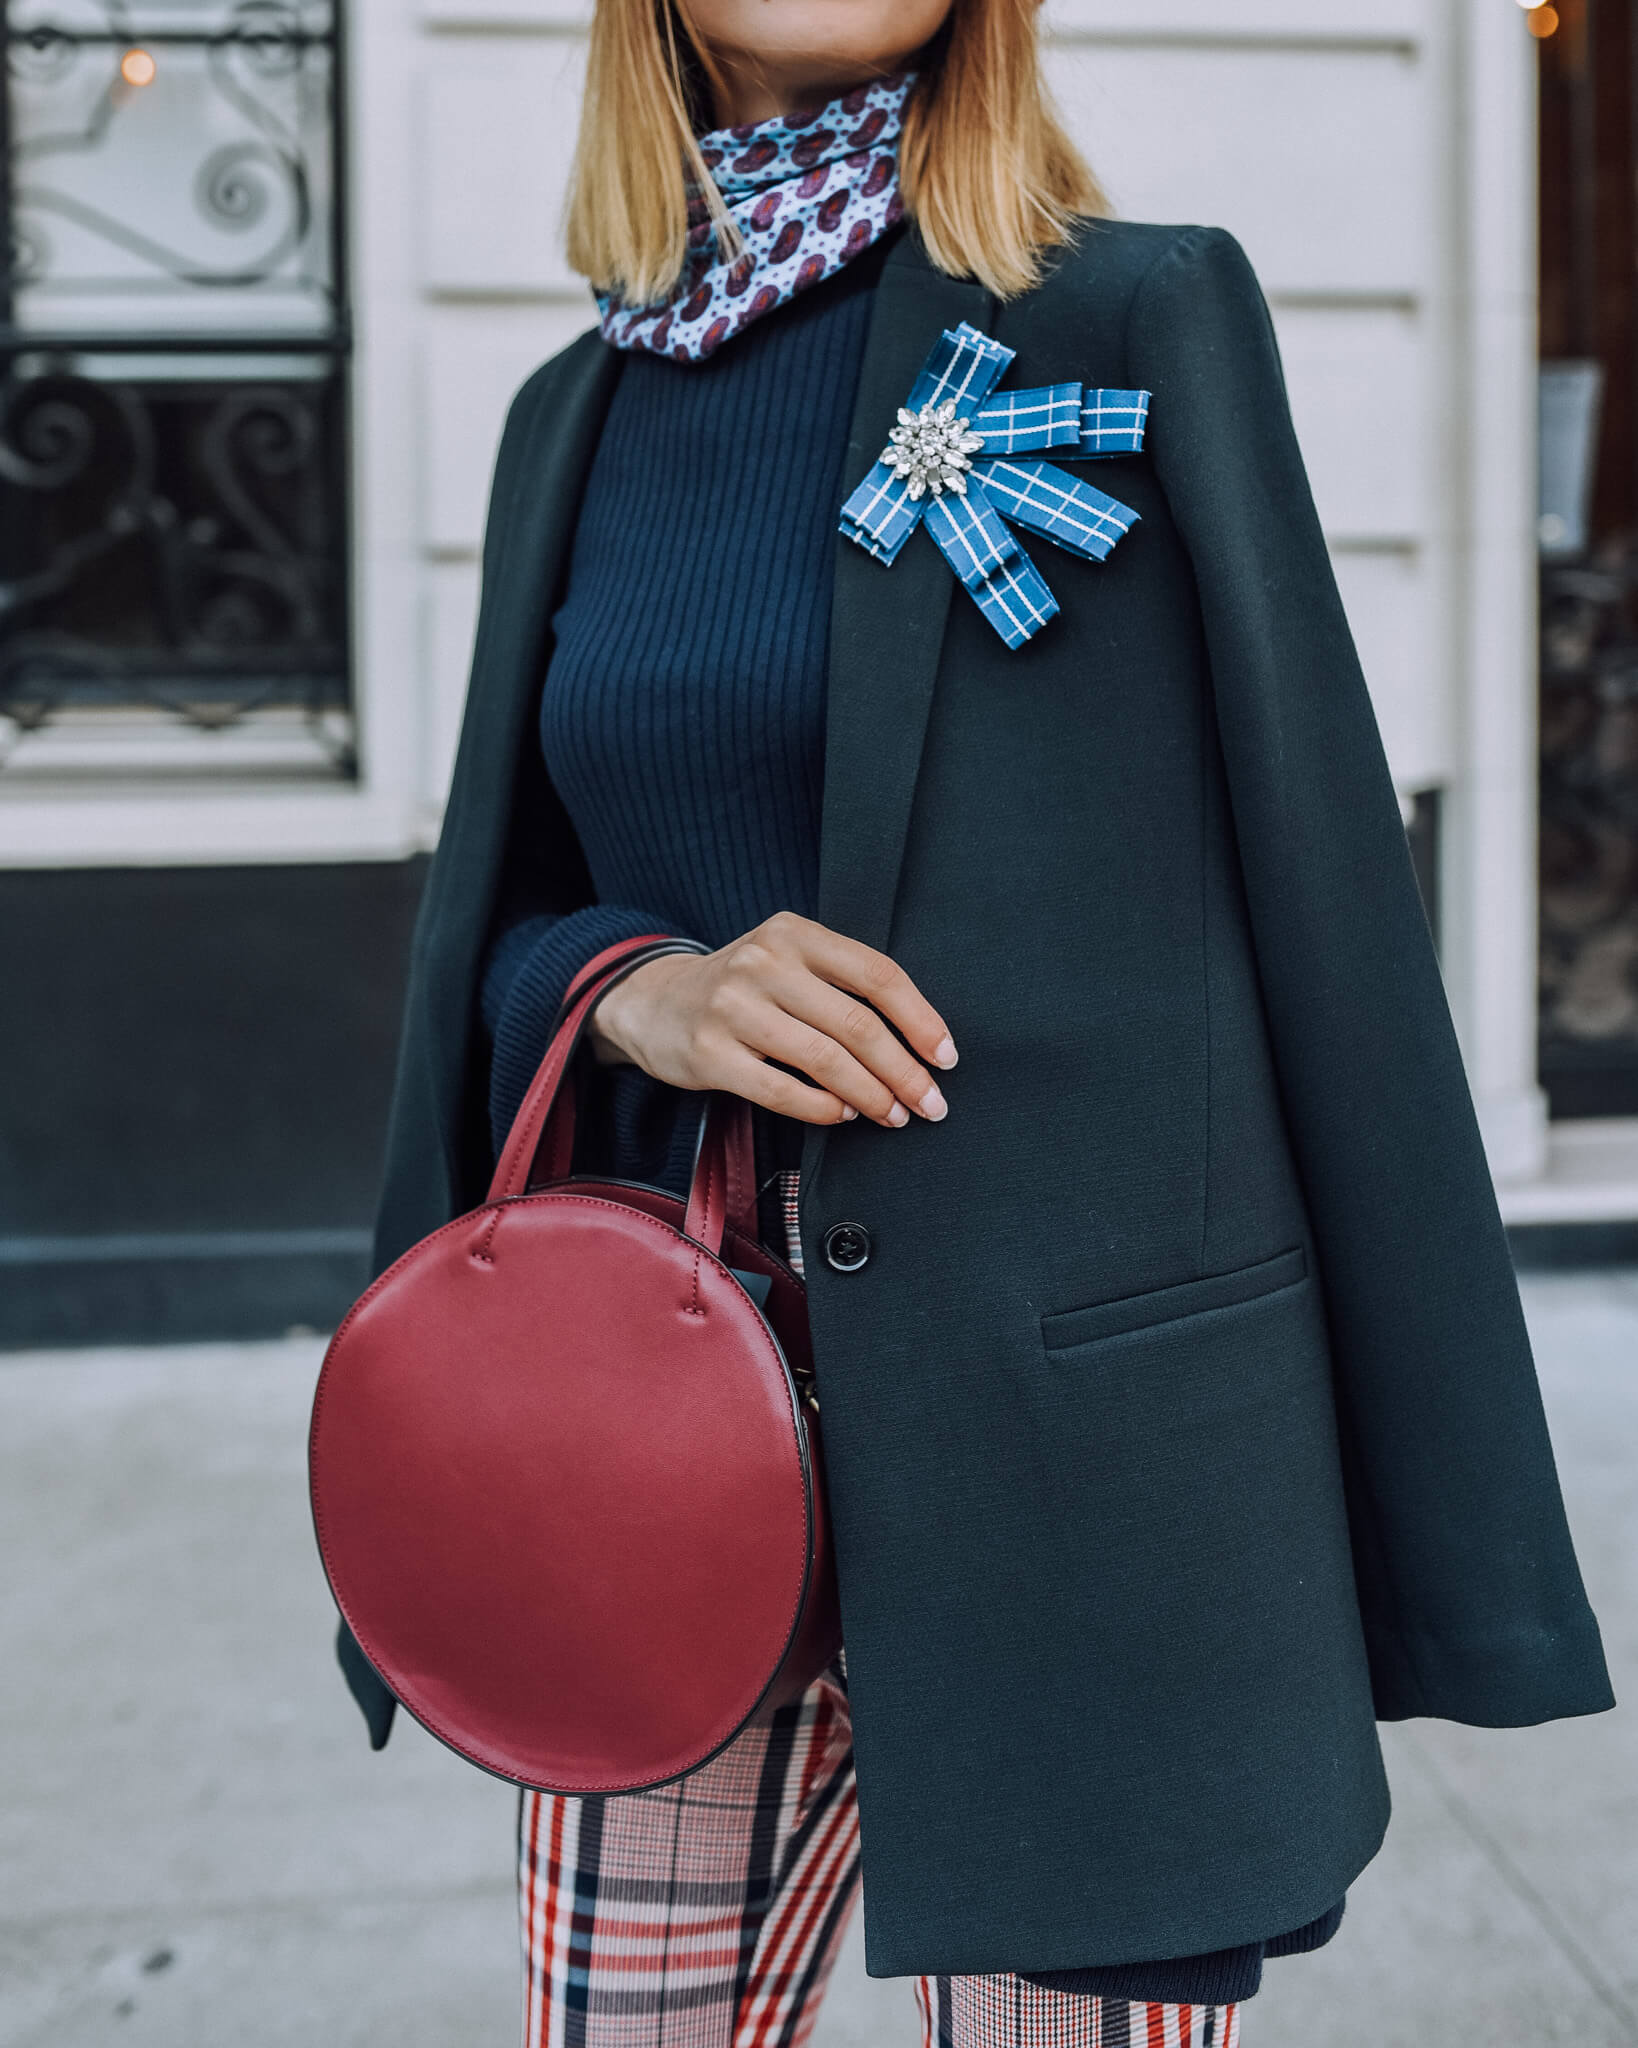 Fall2018-Plaid-Trend-Outfit-03.jpg